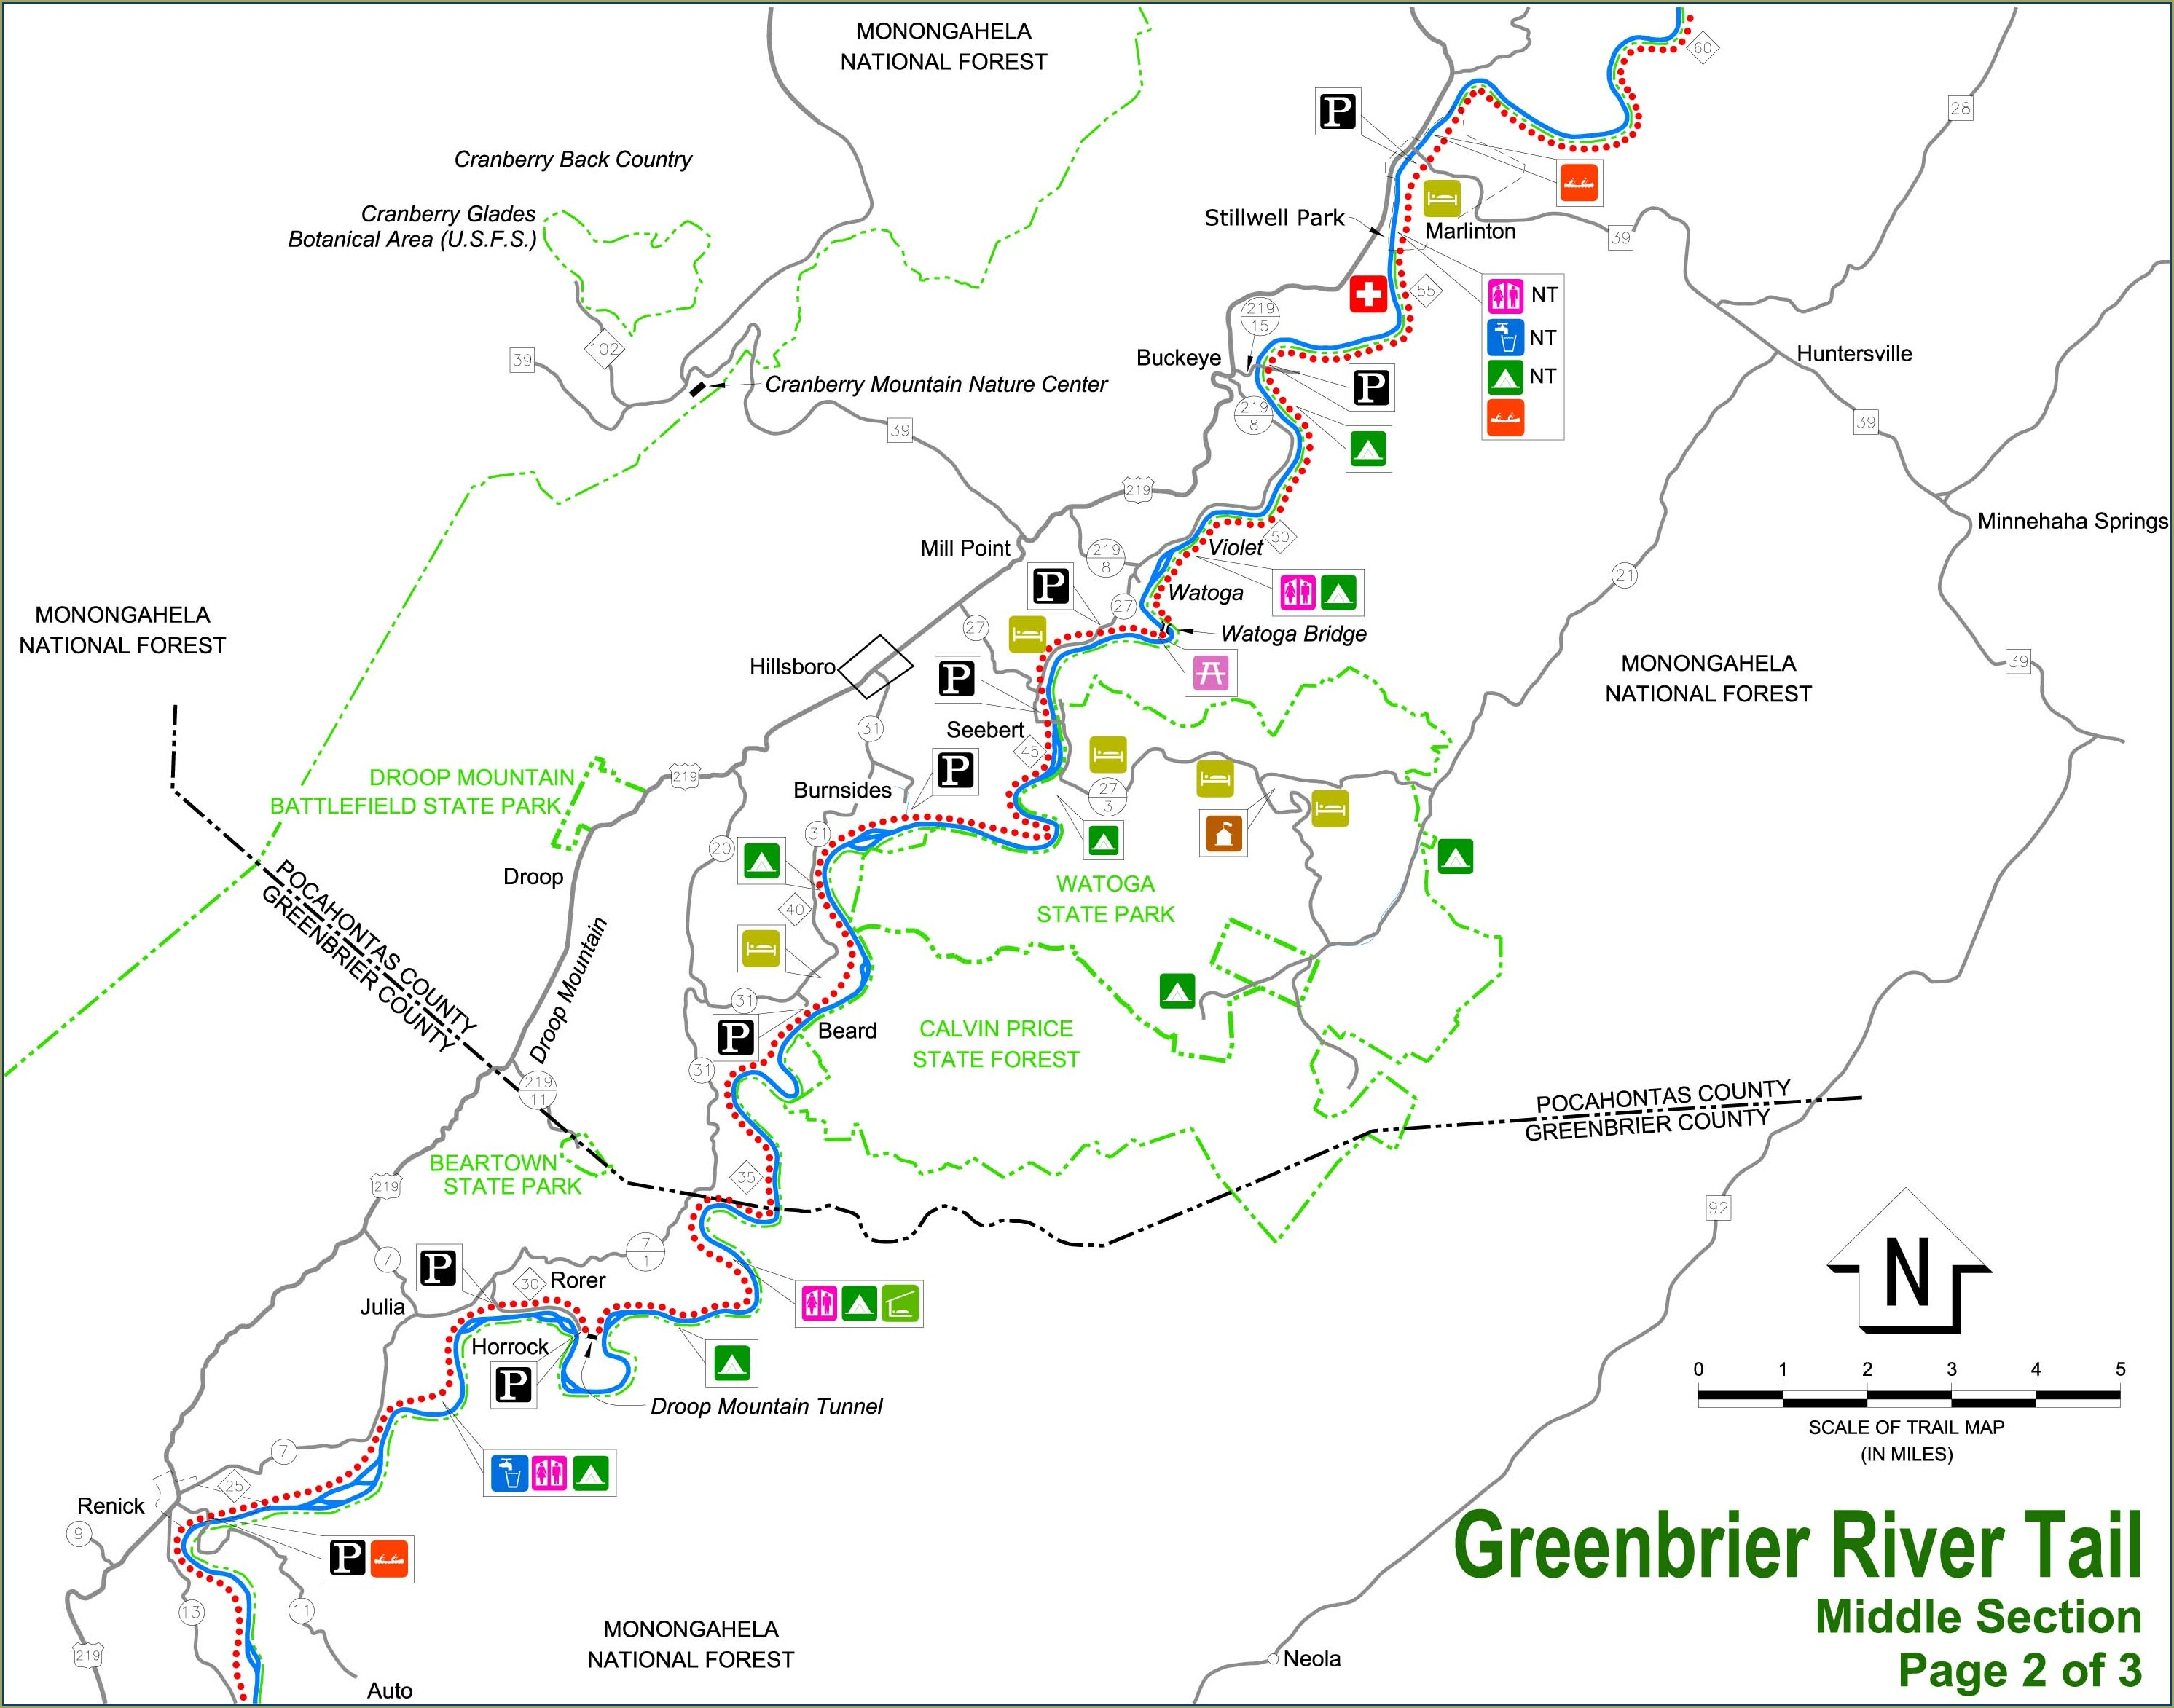 Greenbrier River Trail Map With Mile Markers